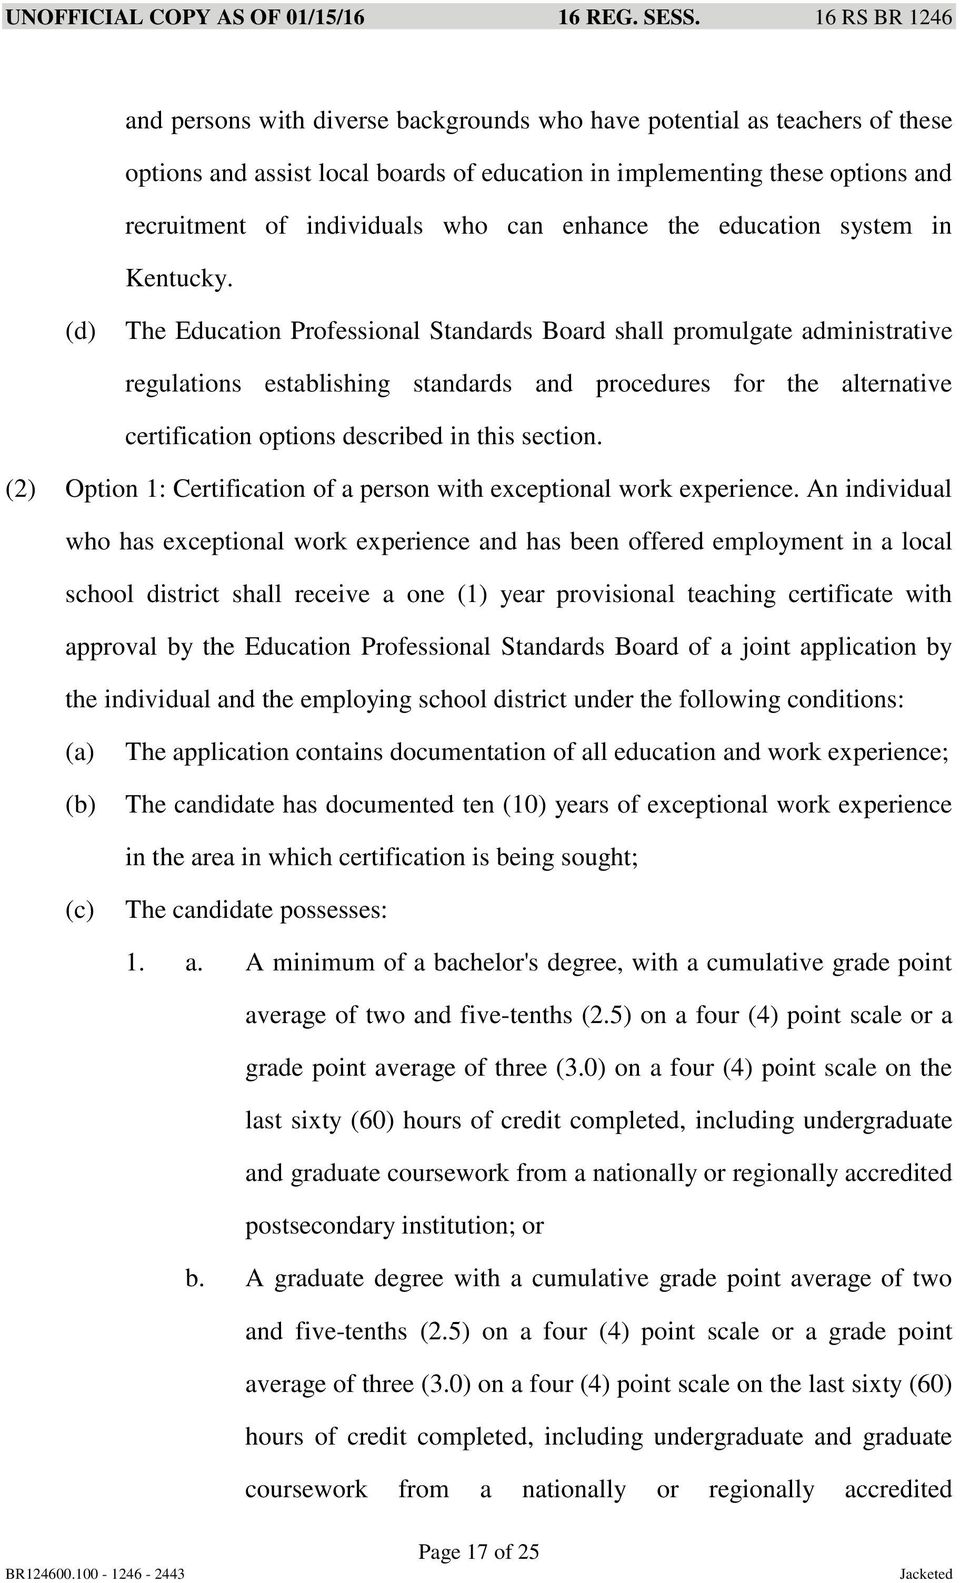 The Education Professional Standards Board shall promulgate administrative regulations establishing standards and procedures for the alternative certification options described in this section.